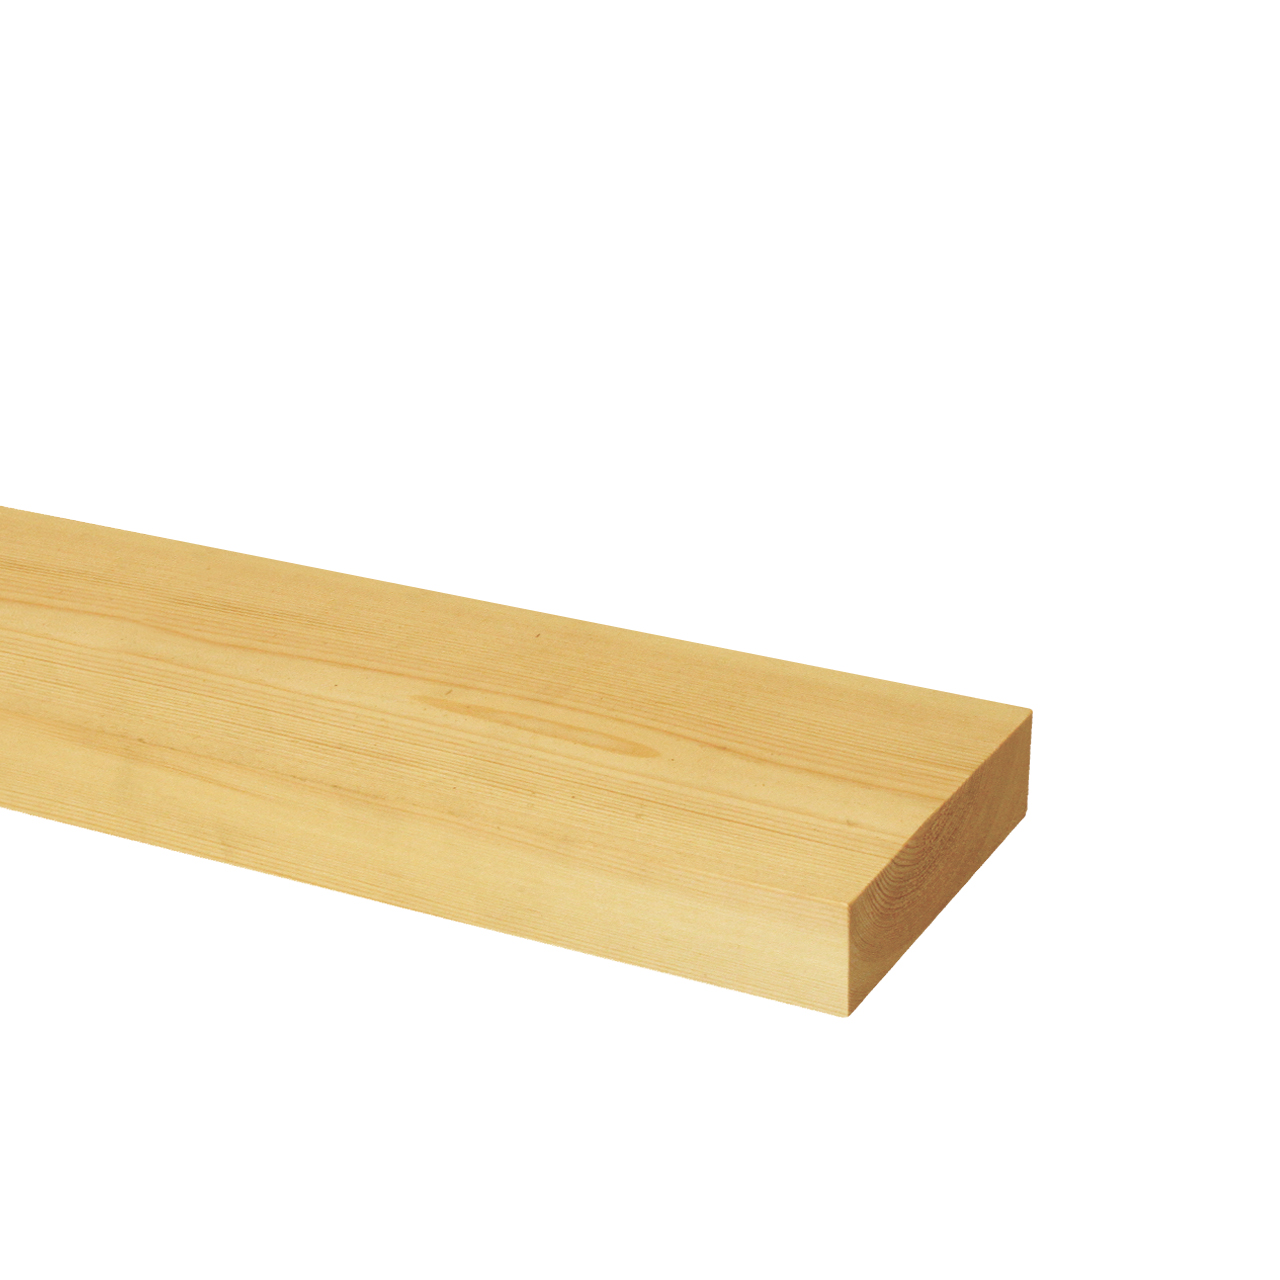 50mm x 100mm PSE Softwood (45mm x 95mm Finished Size) image 0